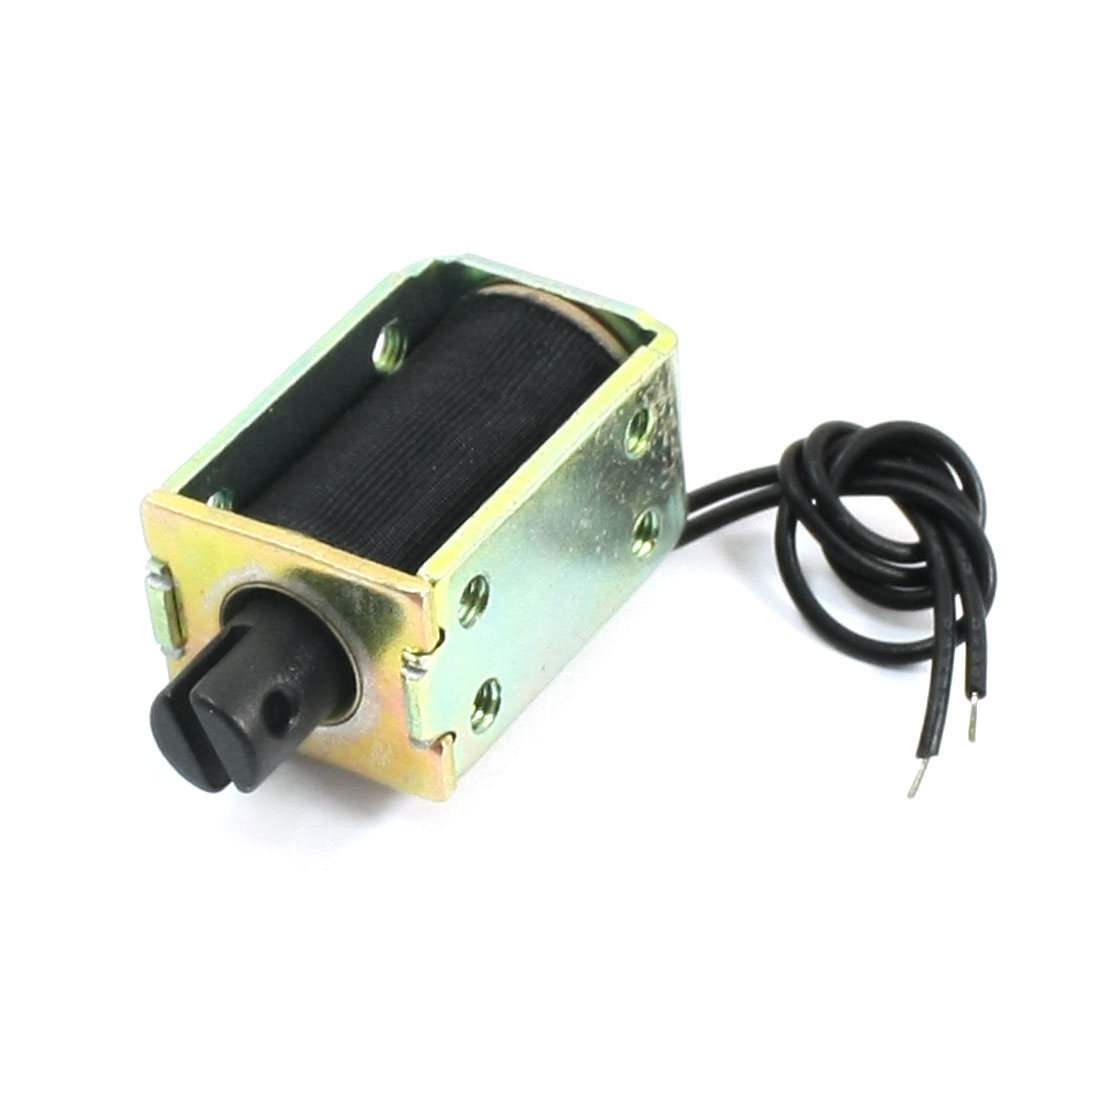 4mm Stroke 120g Force 2-Wire Connect Open Frame Push Type Electric Lifting Magnet Solenoid Electromagnet DC24V 0.2A